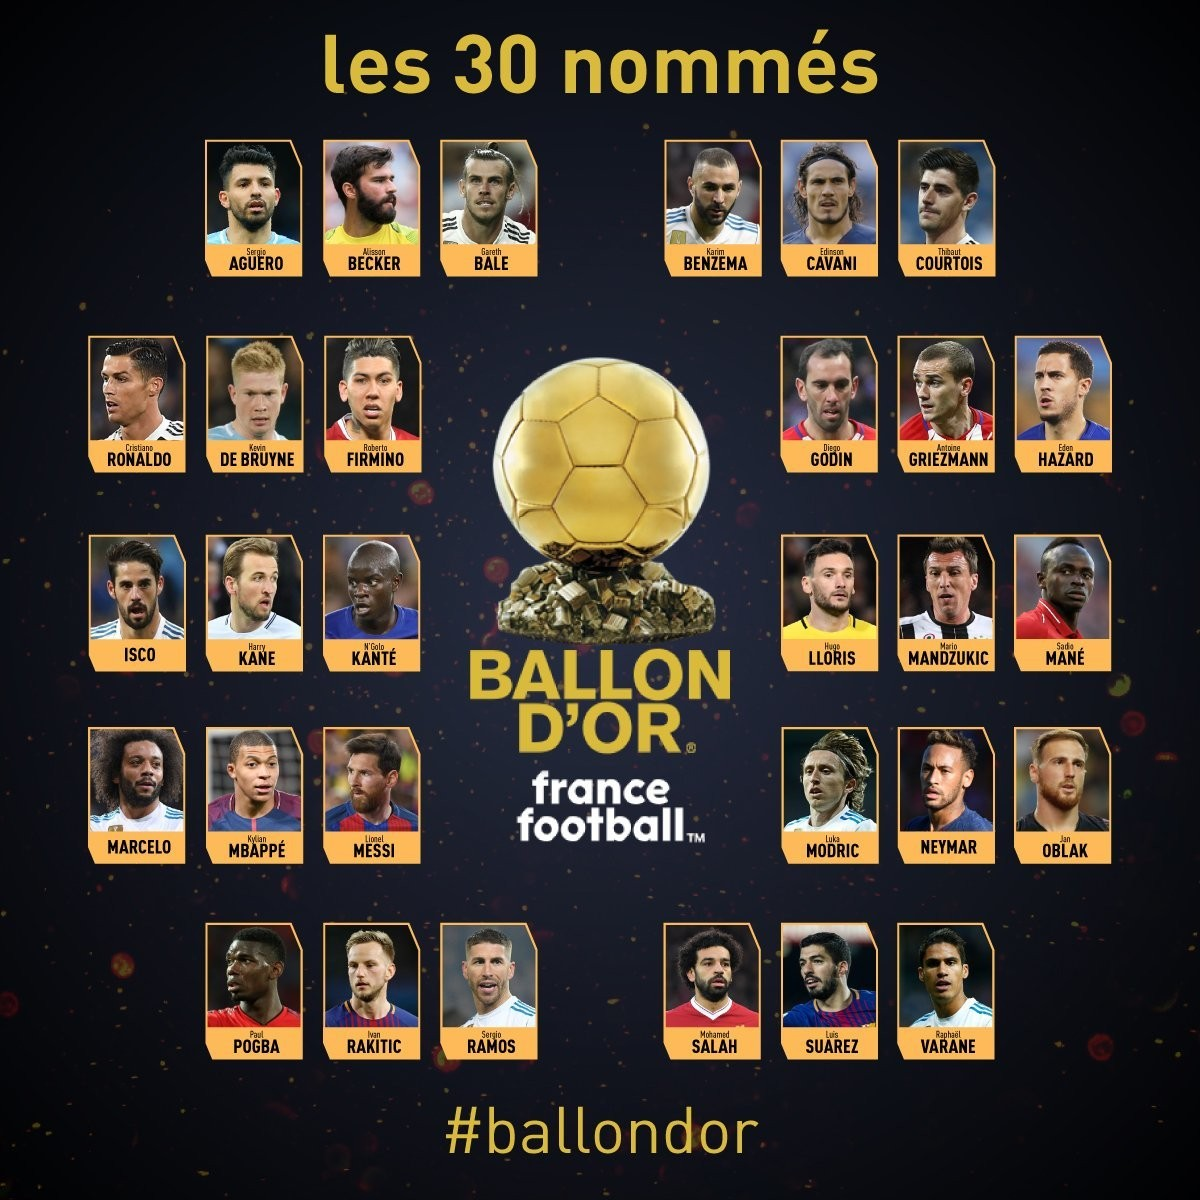 Balu00f3n d'or candidats